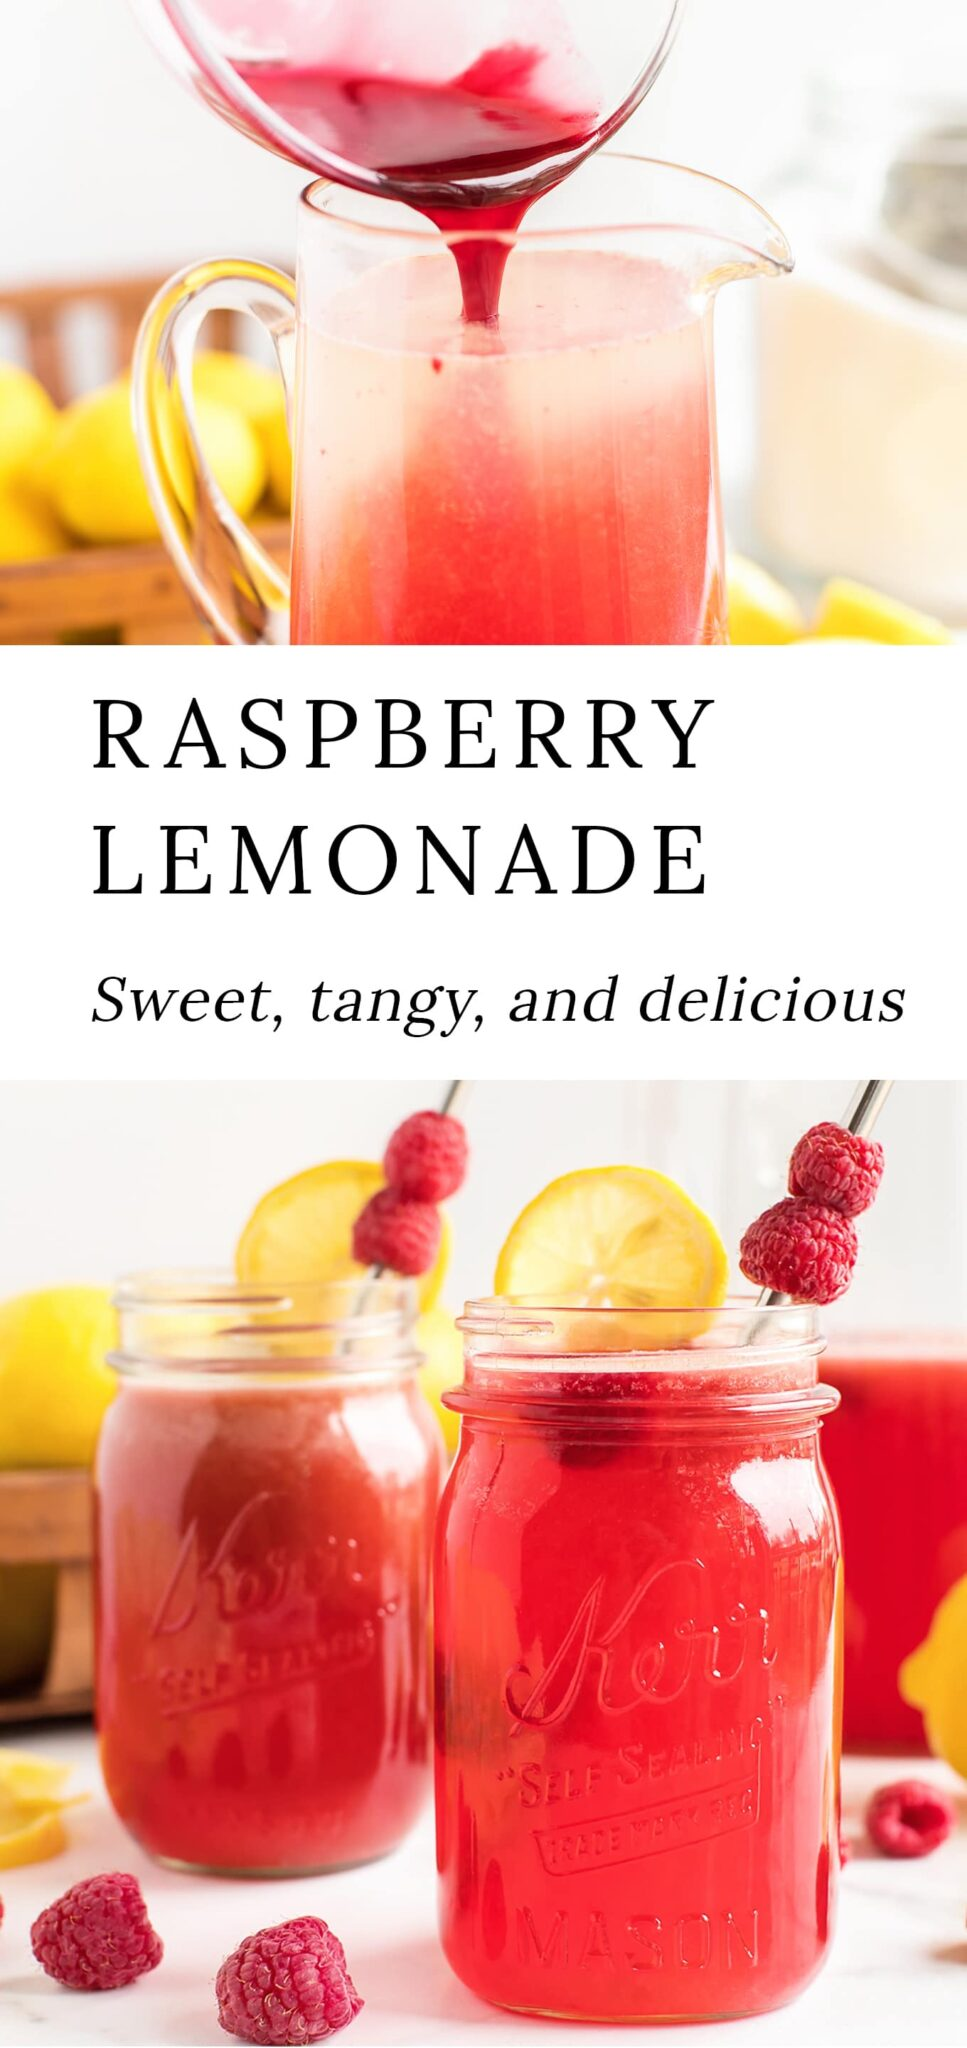 Our easy homemade Raspberry Lemonade recipe uses frozen raspberries and fresh lemons, making it a sweet and tangy drink perfect for any time of the year! #raspberrylemonade #lemonade via @firefliesandmudpies